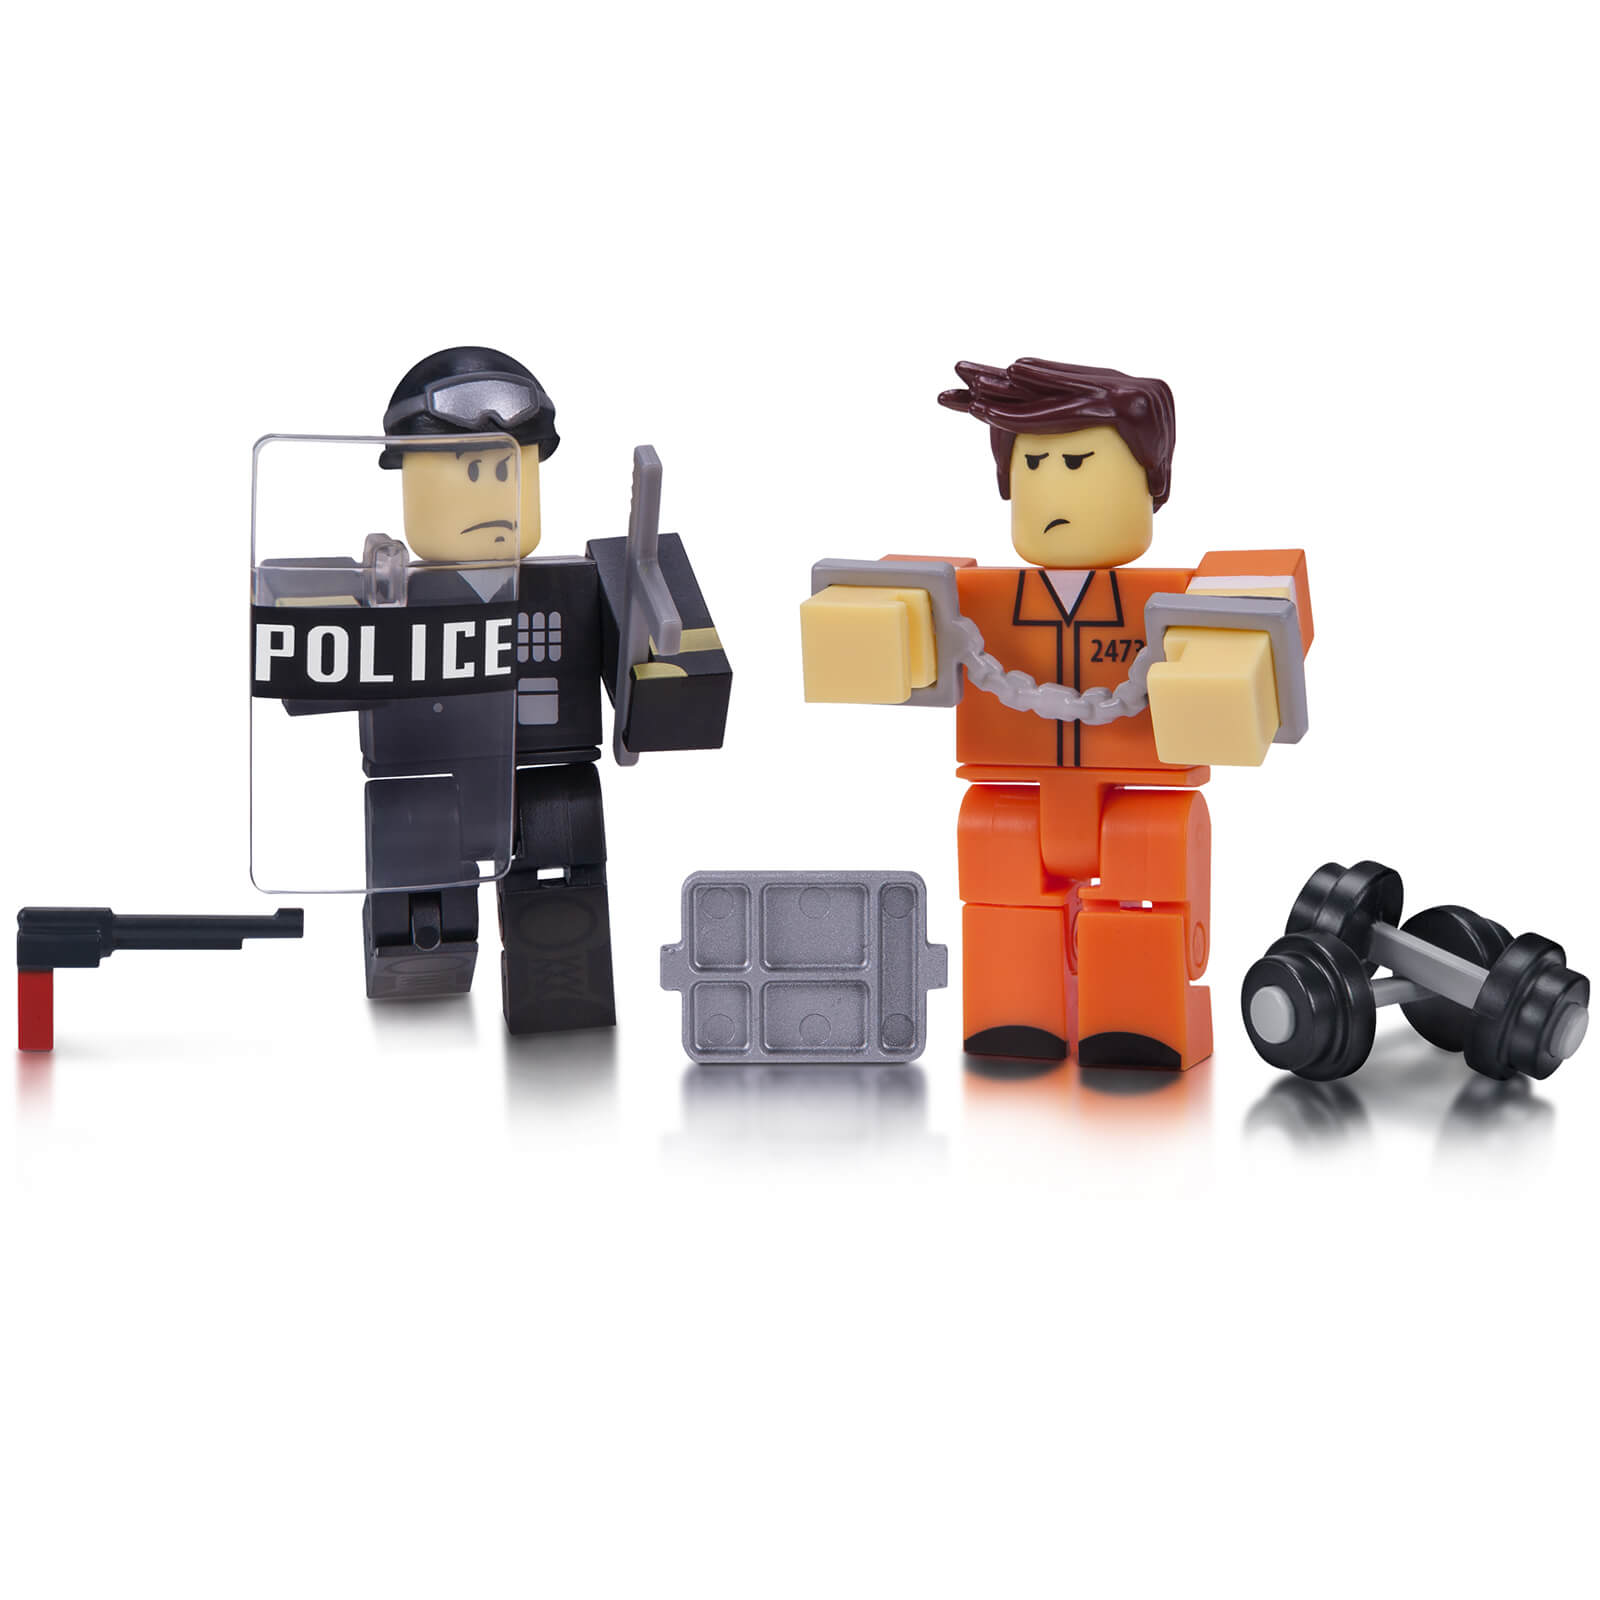 ROBLOX Prison Life Game Figure Pack